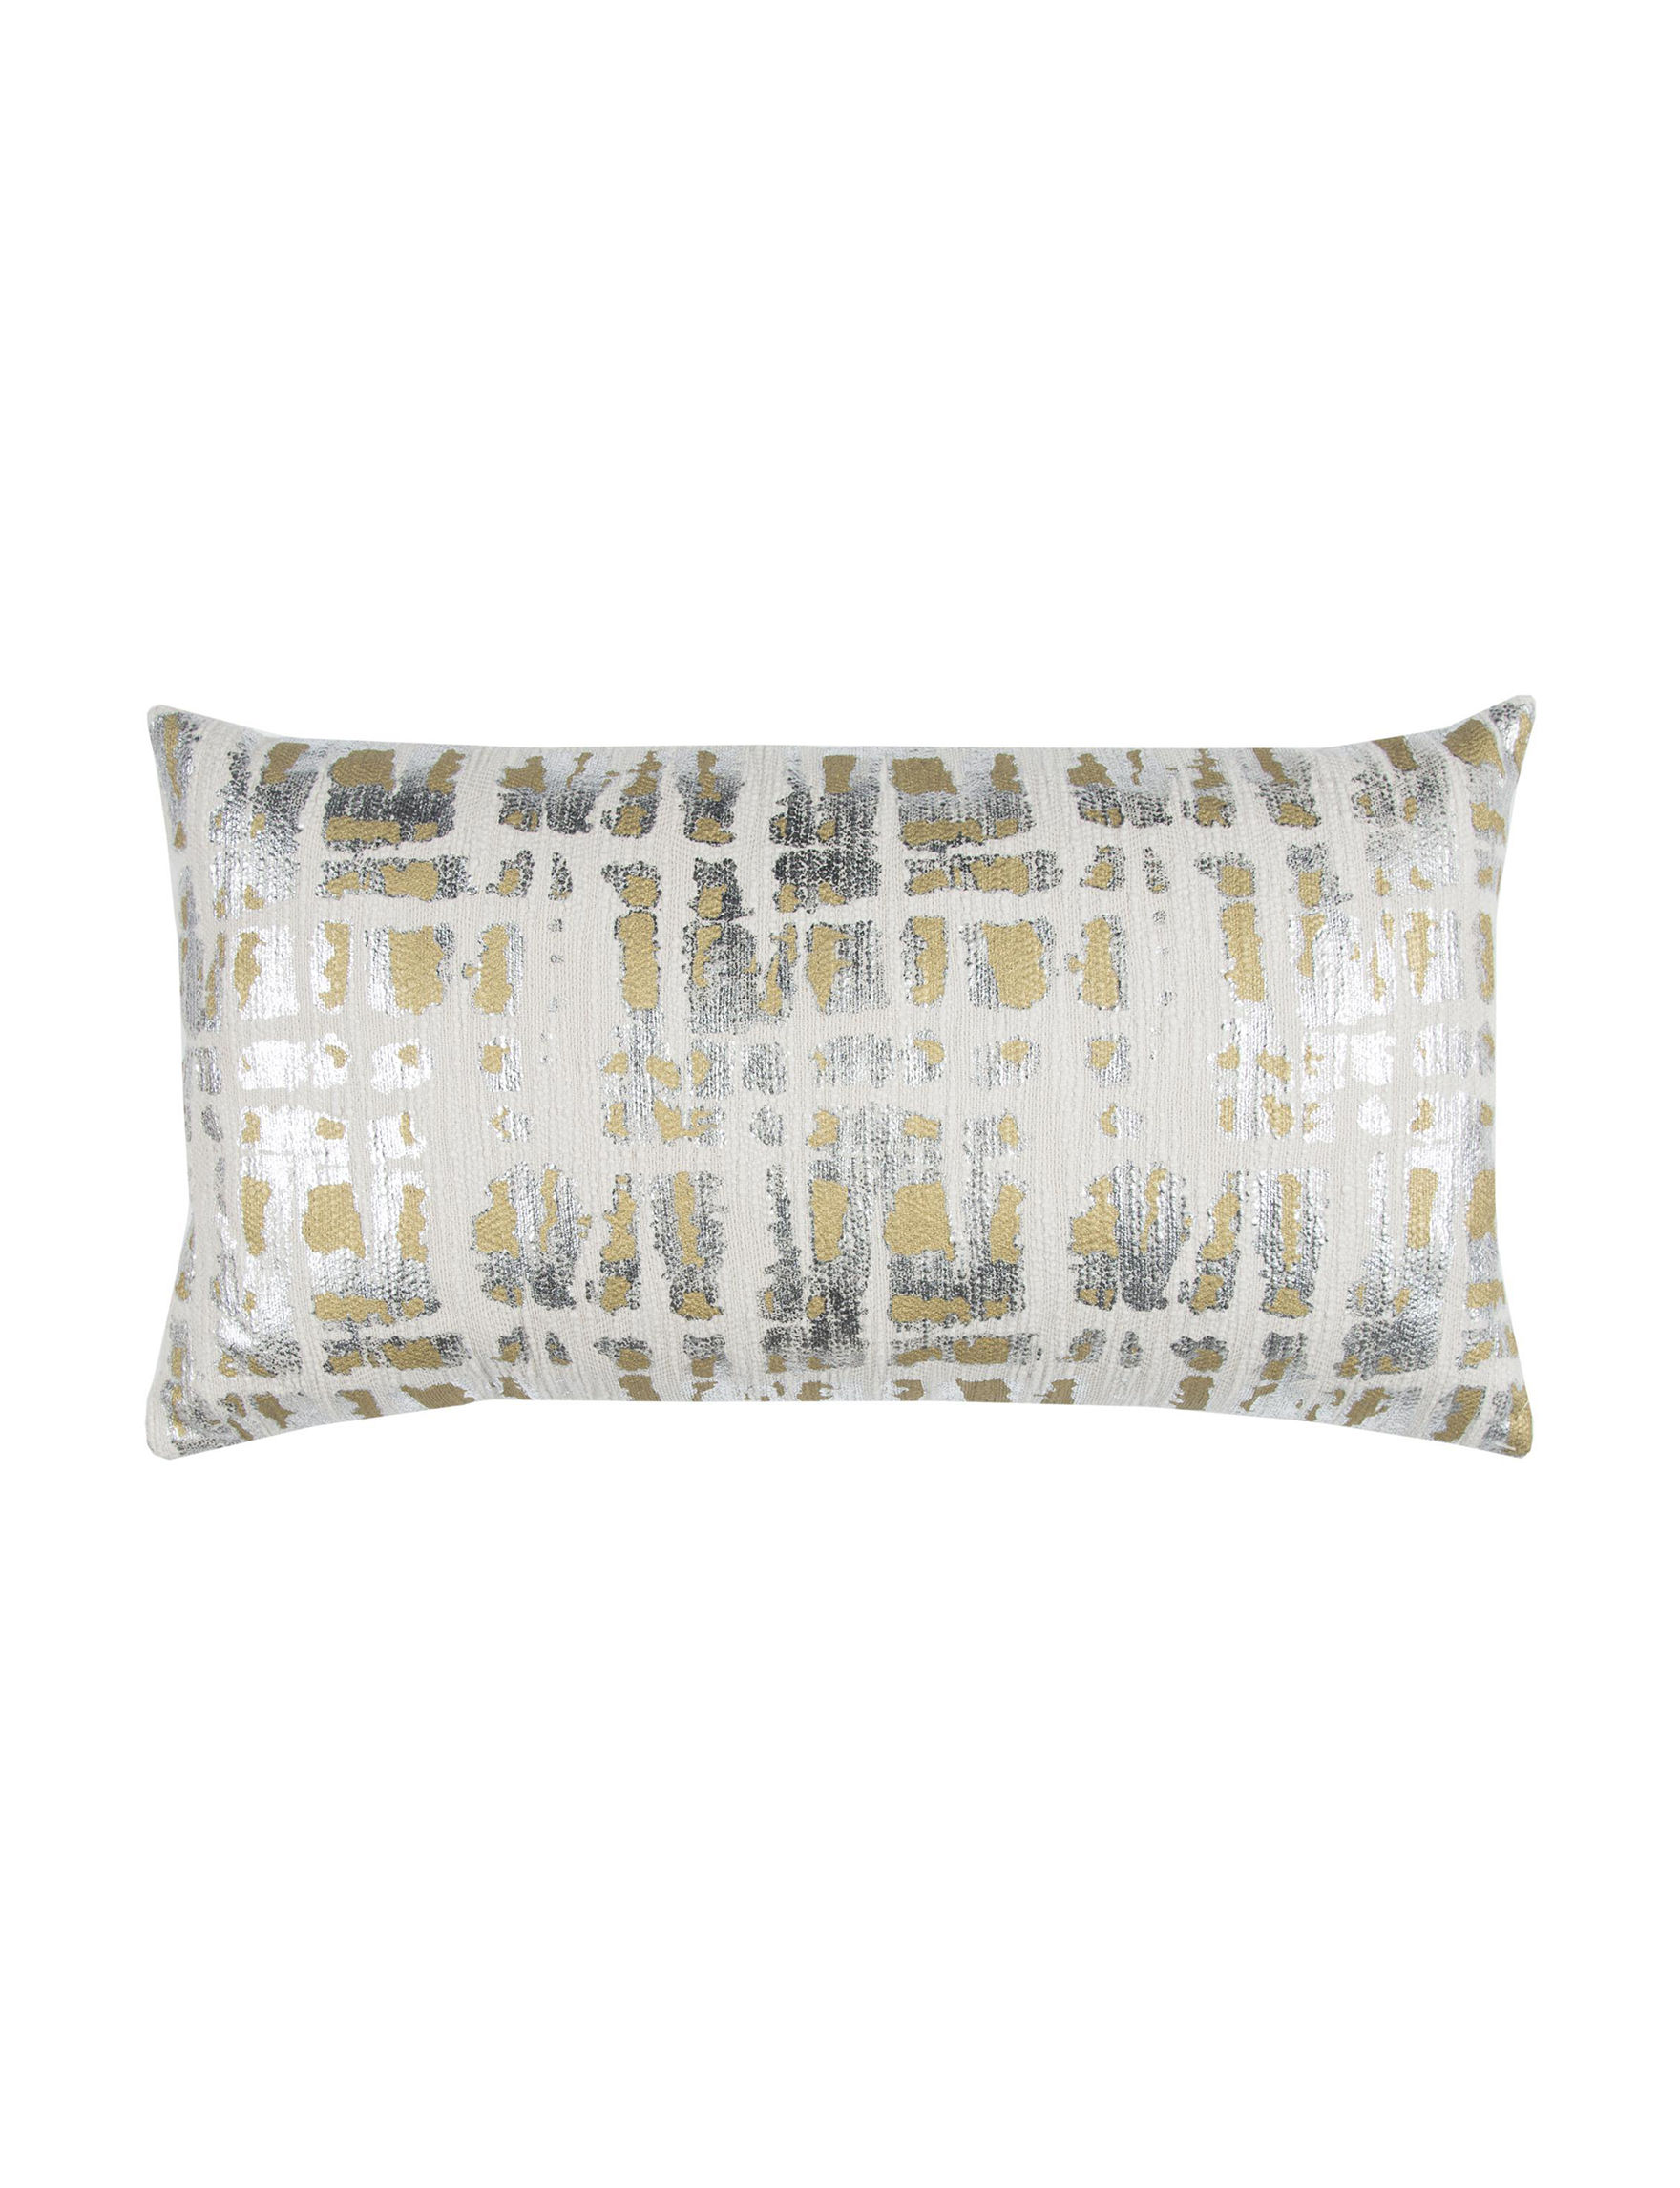 Rizzy Home Beige Pewter/Green Moss Decorative Pillows